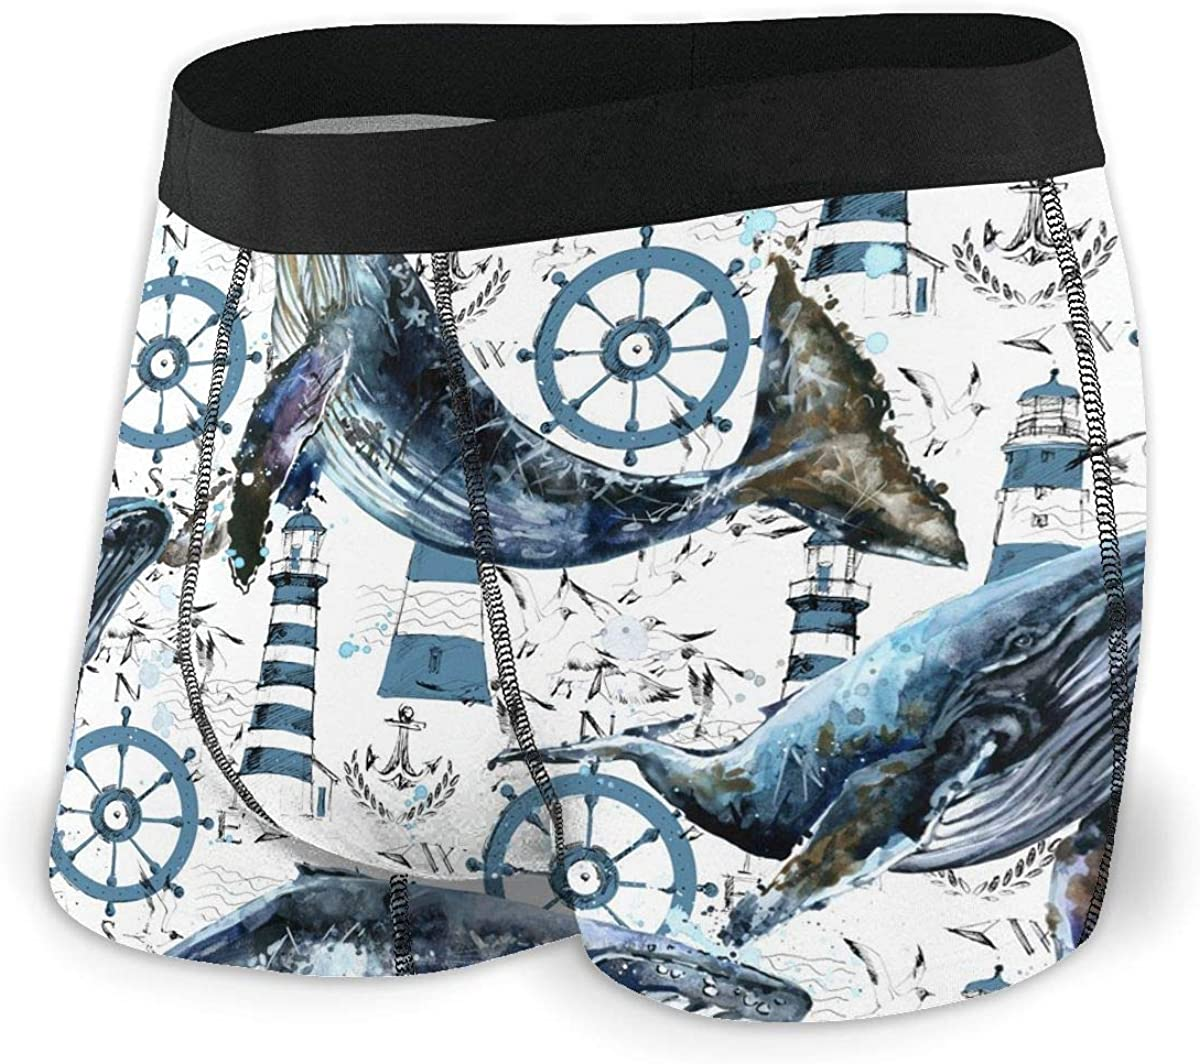 Whale Lighthouse Helm Sea Theme Mens Underwear Boxer Briefs Cotton Sport Trunks S-XXL